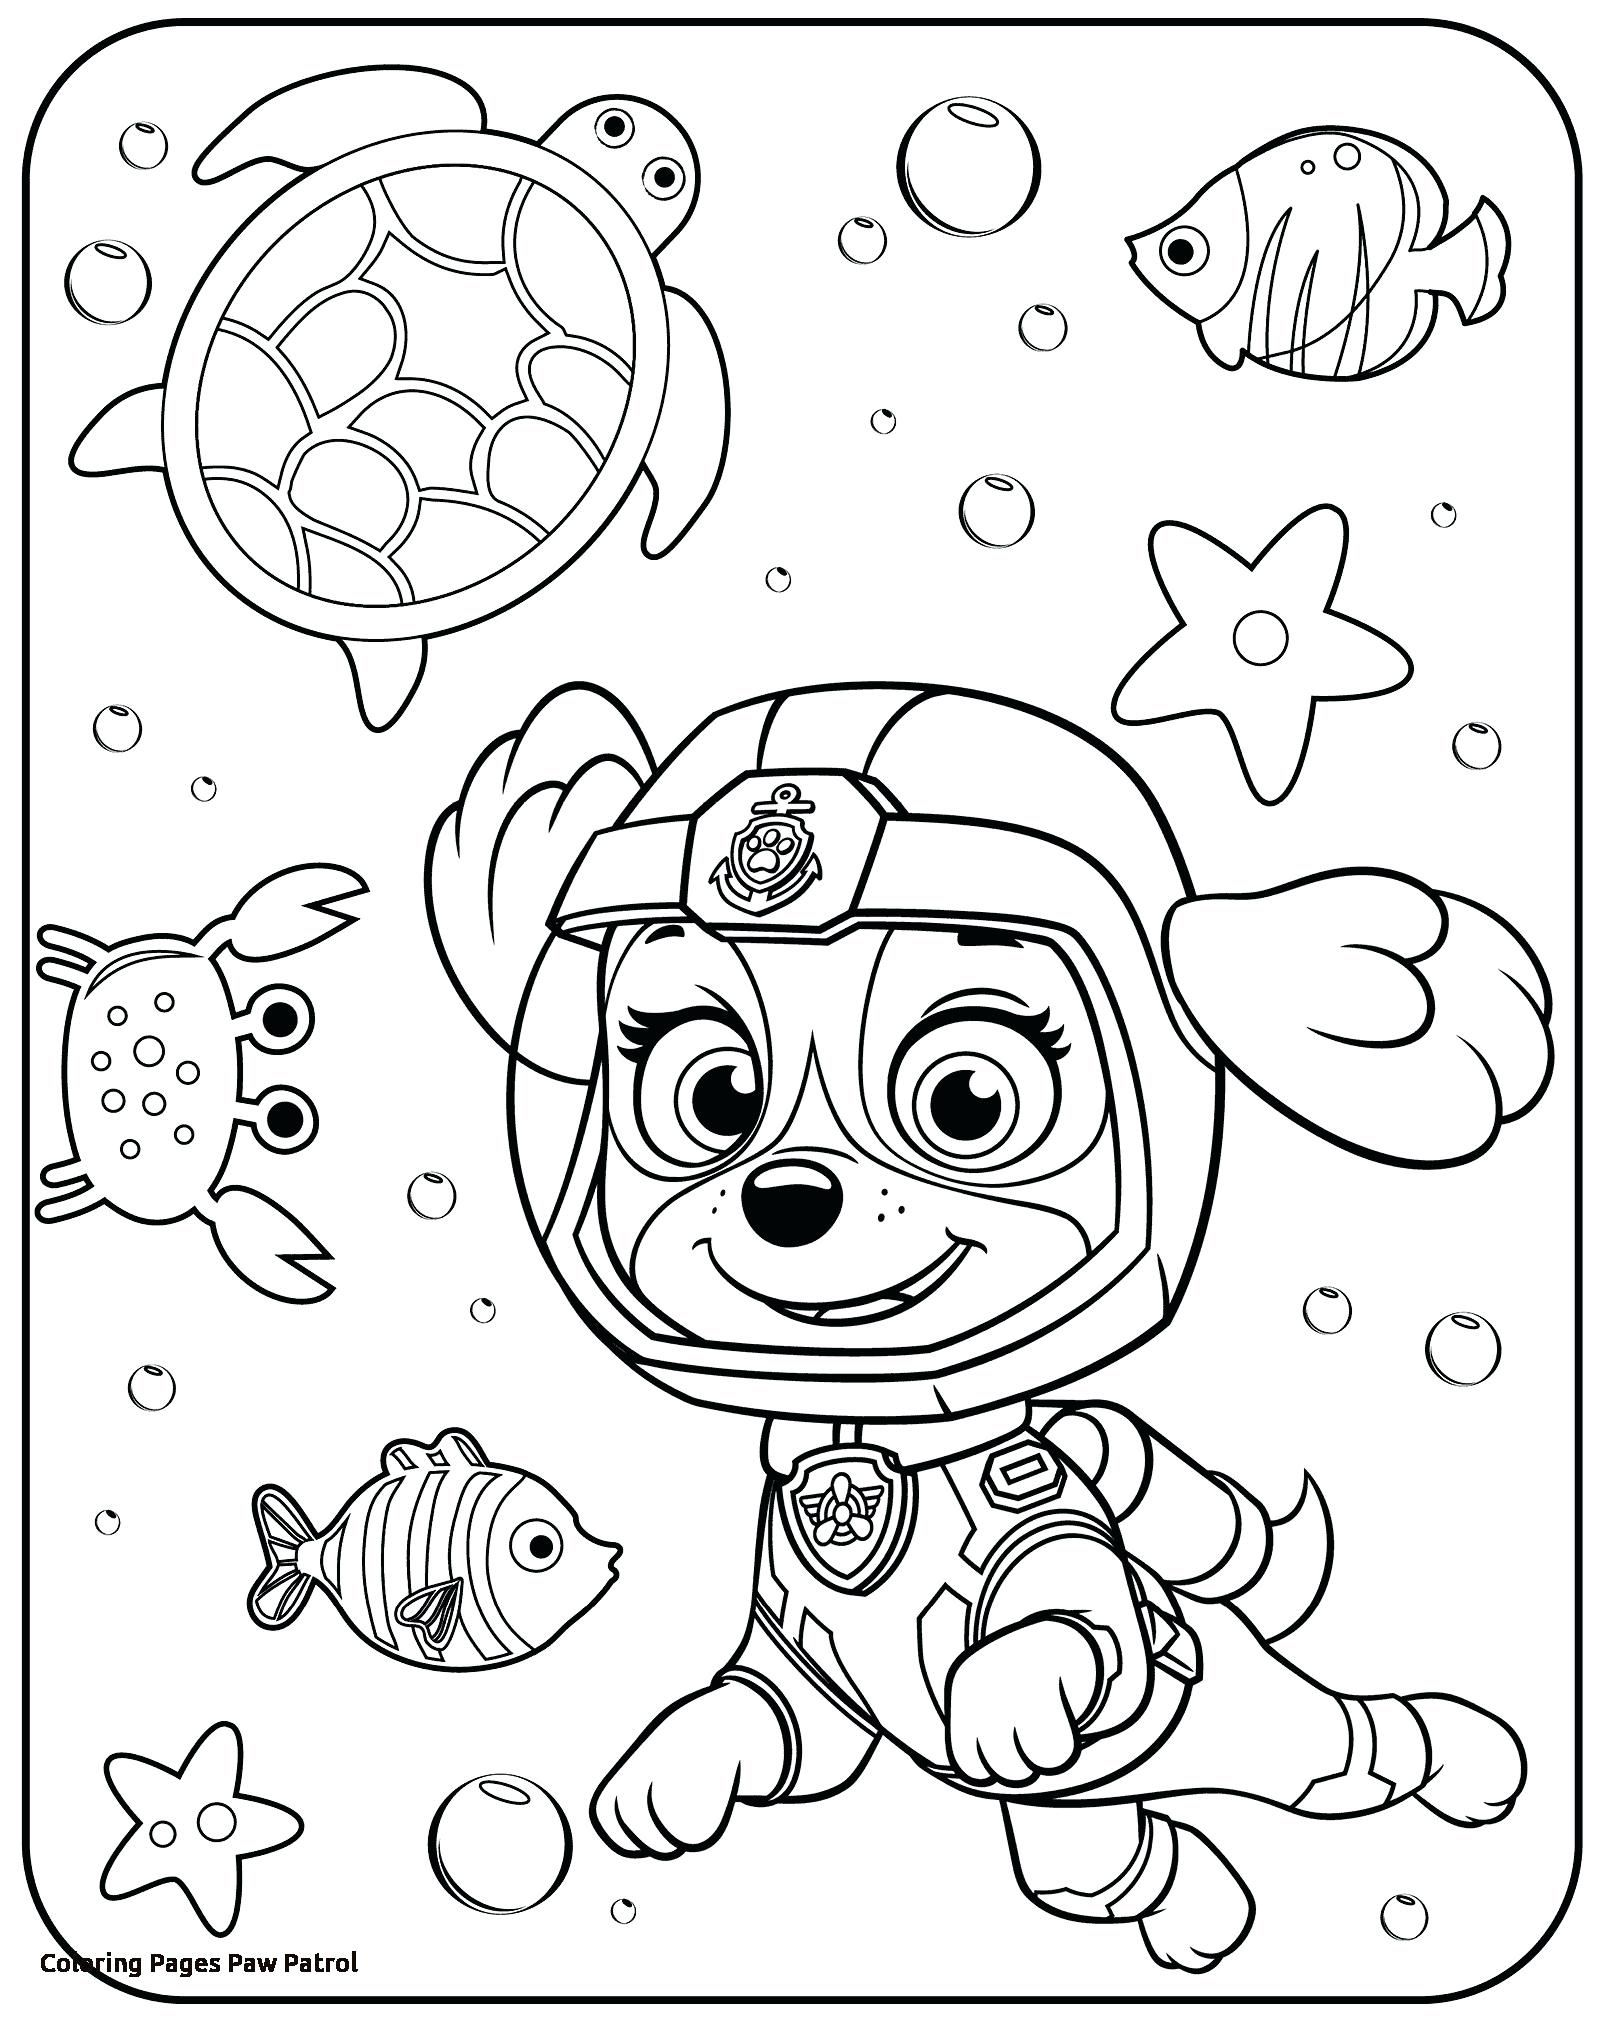 Pin By Alyssa Ethridge On Coloring Pages For James Paw Patrol